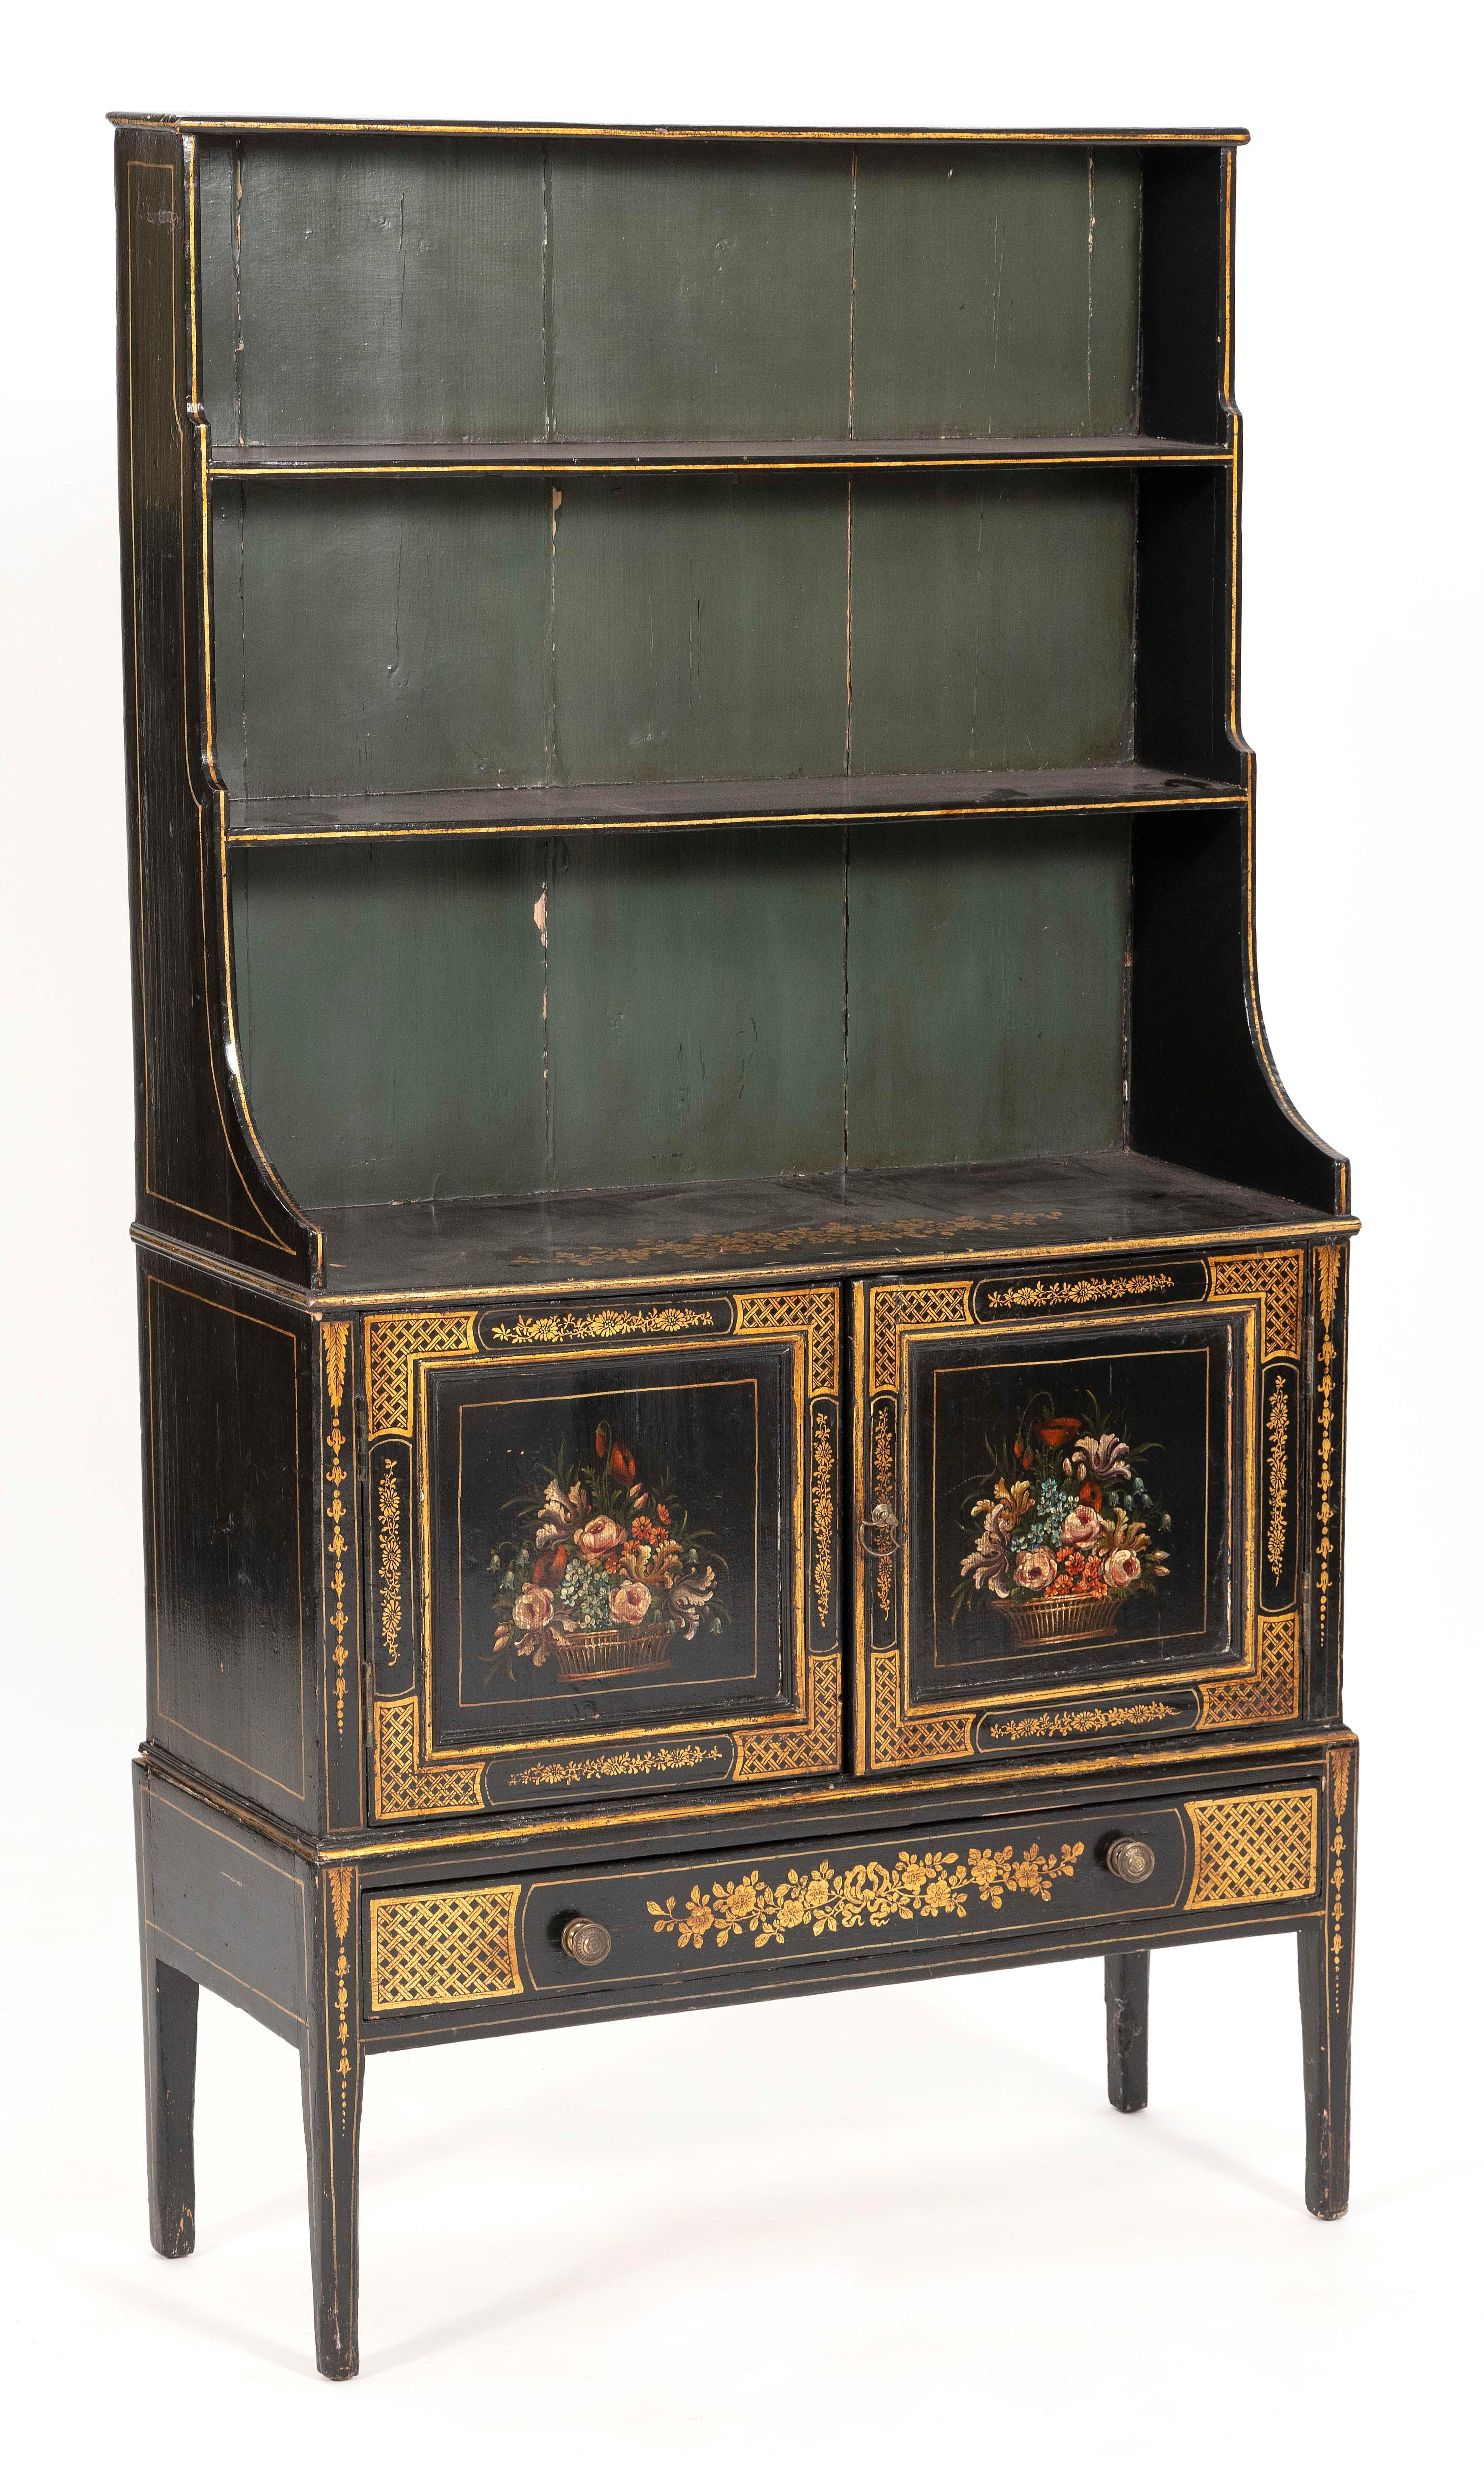 """ENGLISH STEP-BACK CABINET 19th Century Height 54"""". Width 30.5"""". Depth 11.5""""."""